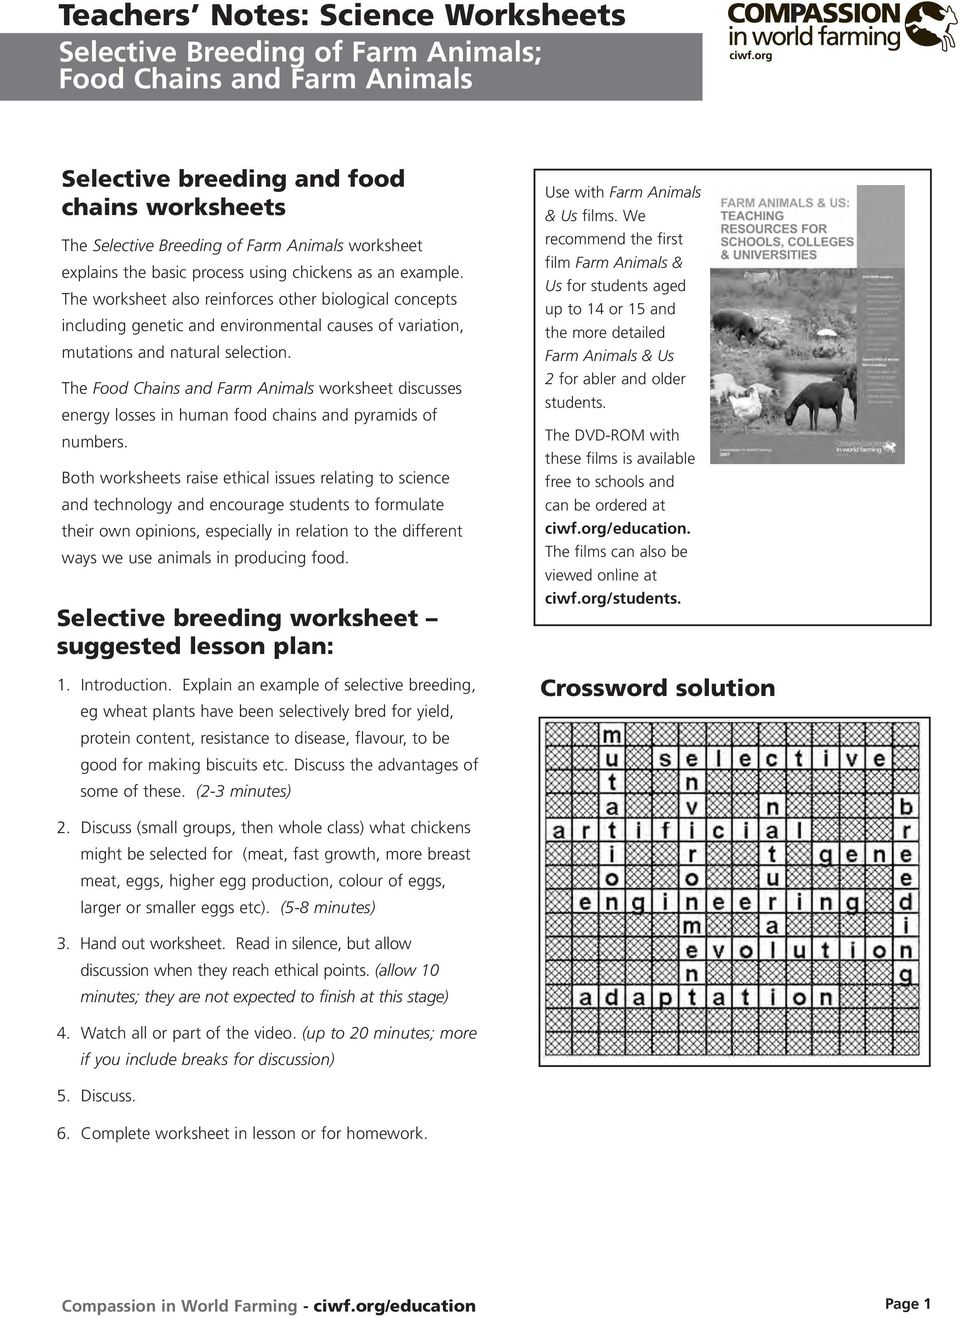 Teachers Notes Science Worksheets Pdf